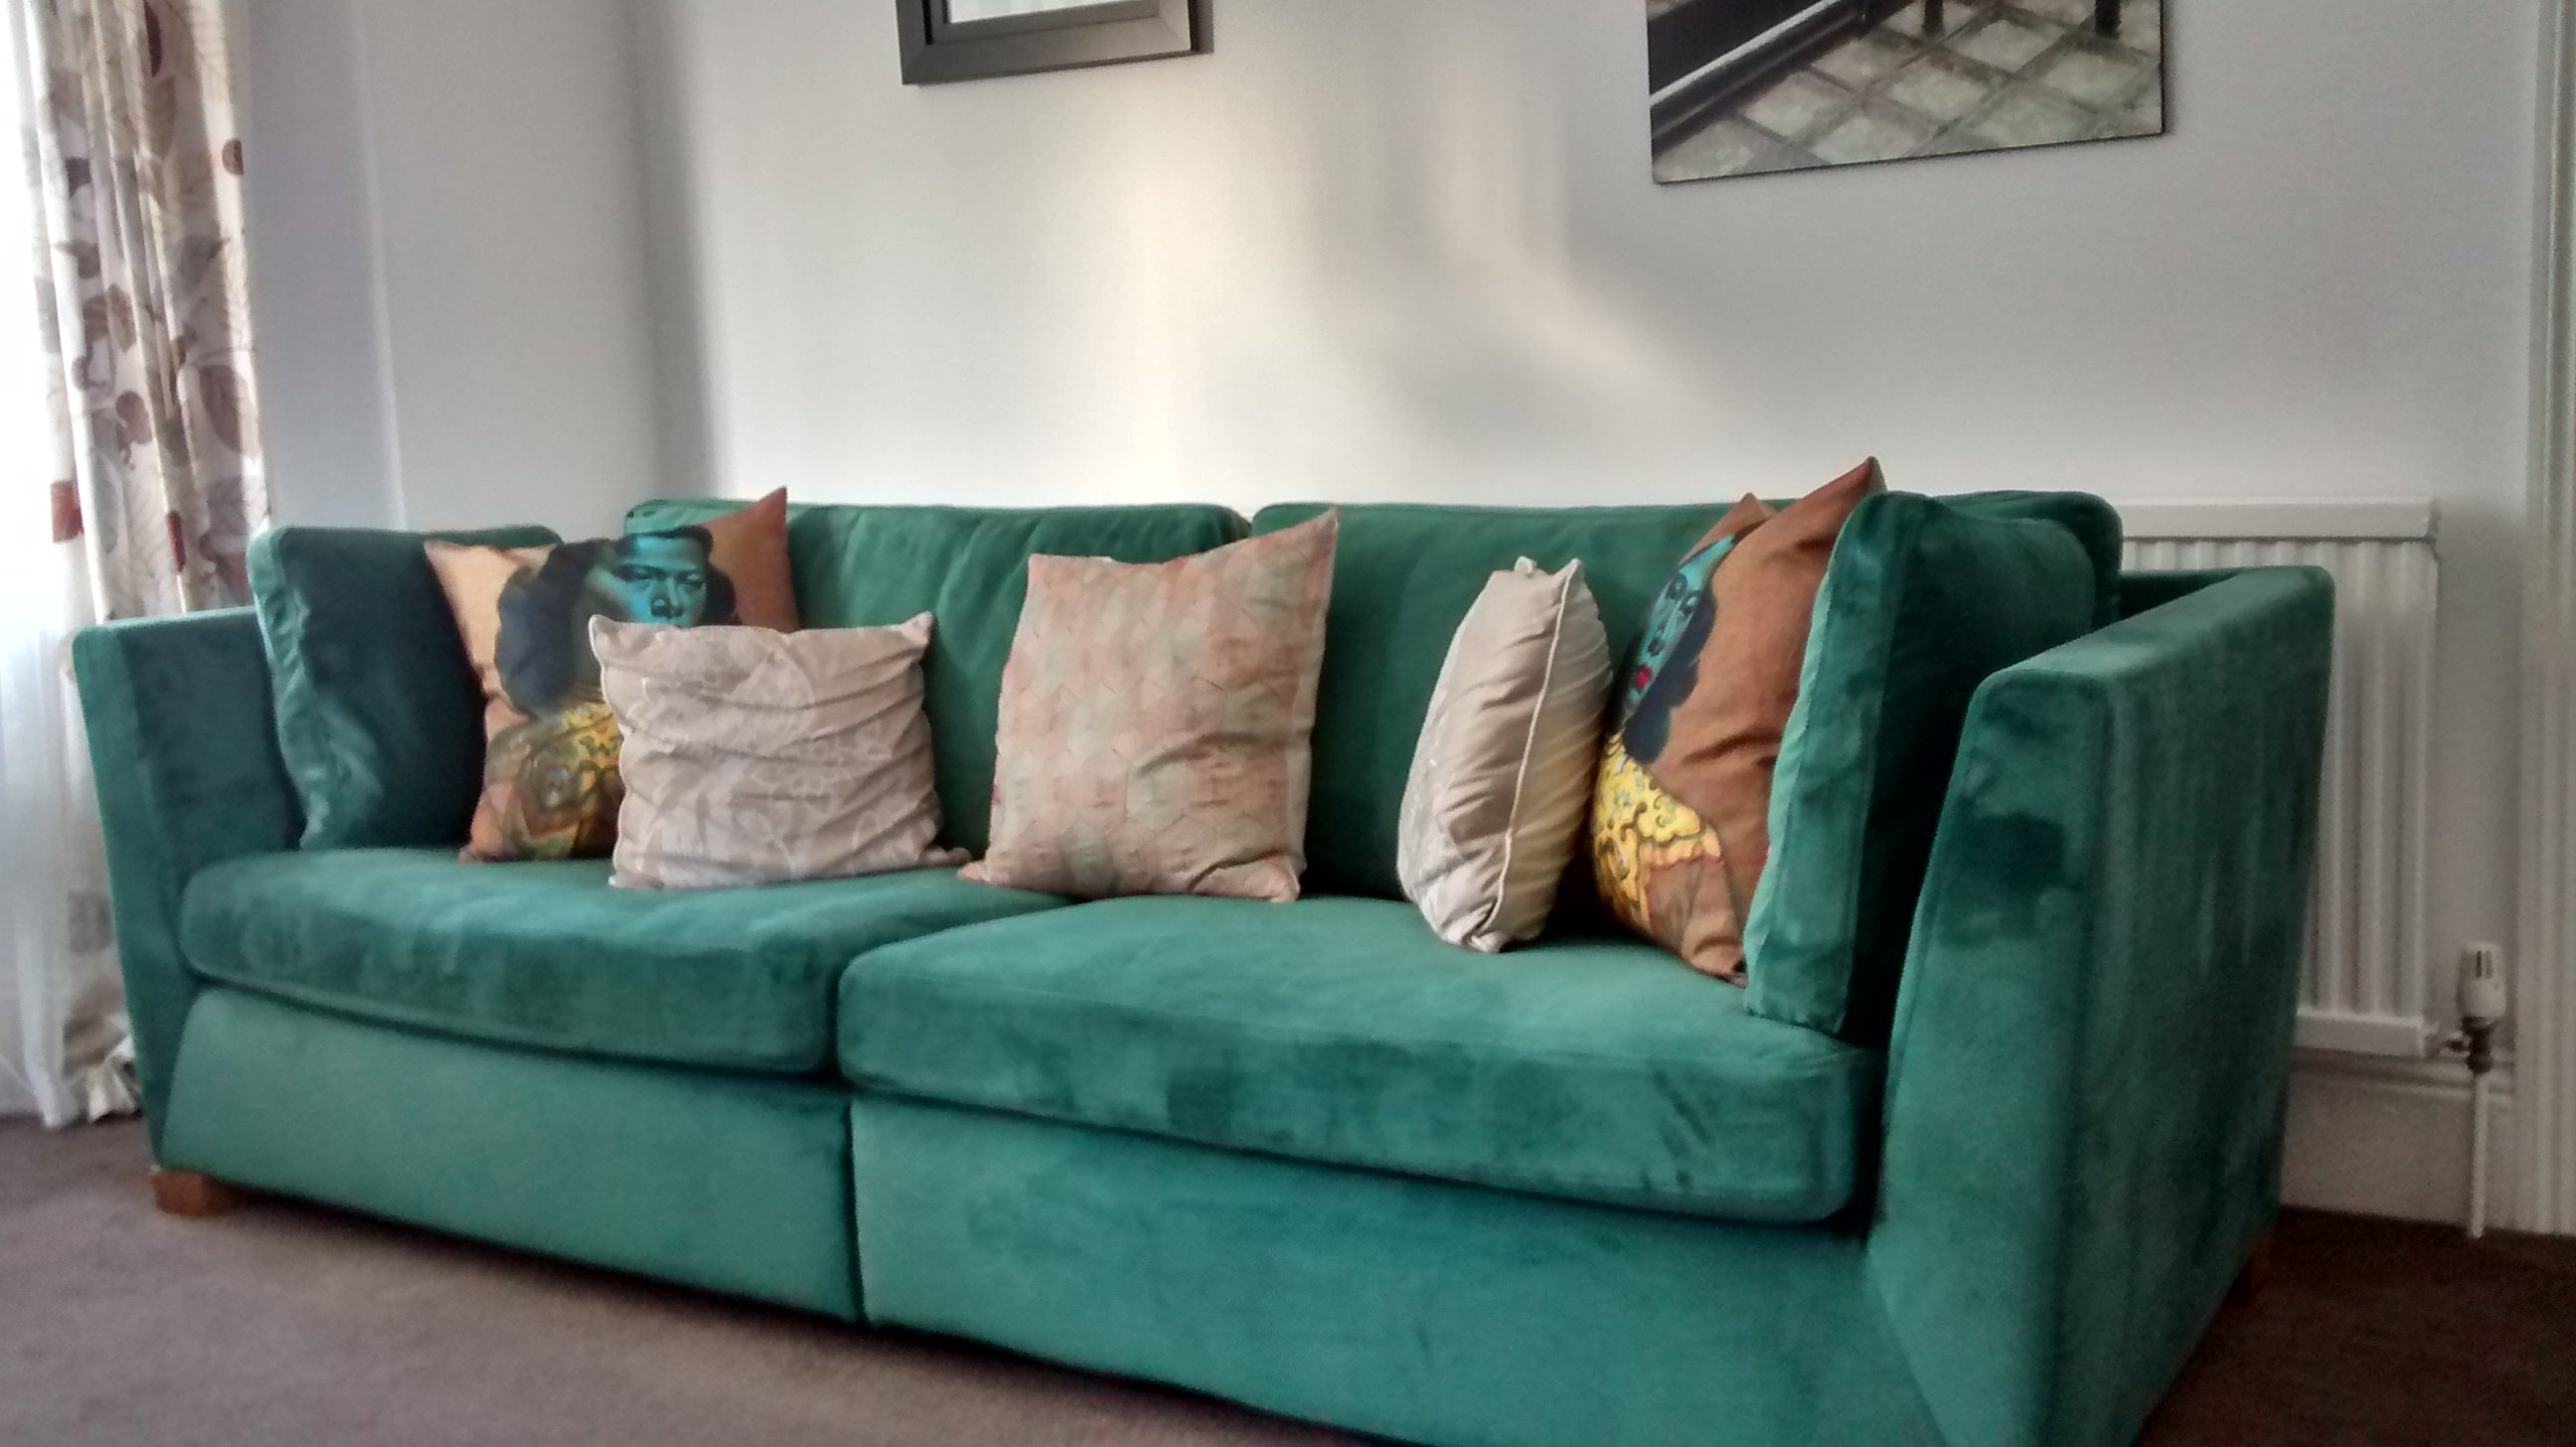 Amazing Ikea Stockholm Sofa Guide And Resource Page Interior Design Ideas Ghosoteloinfo